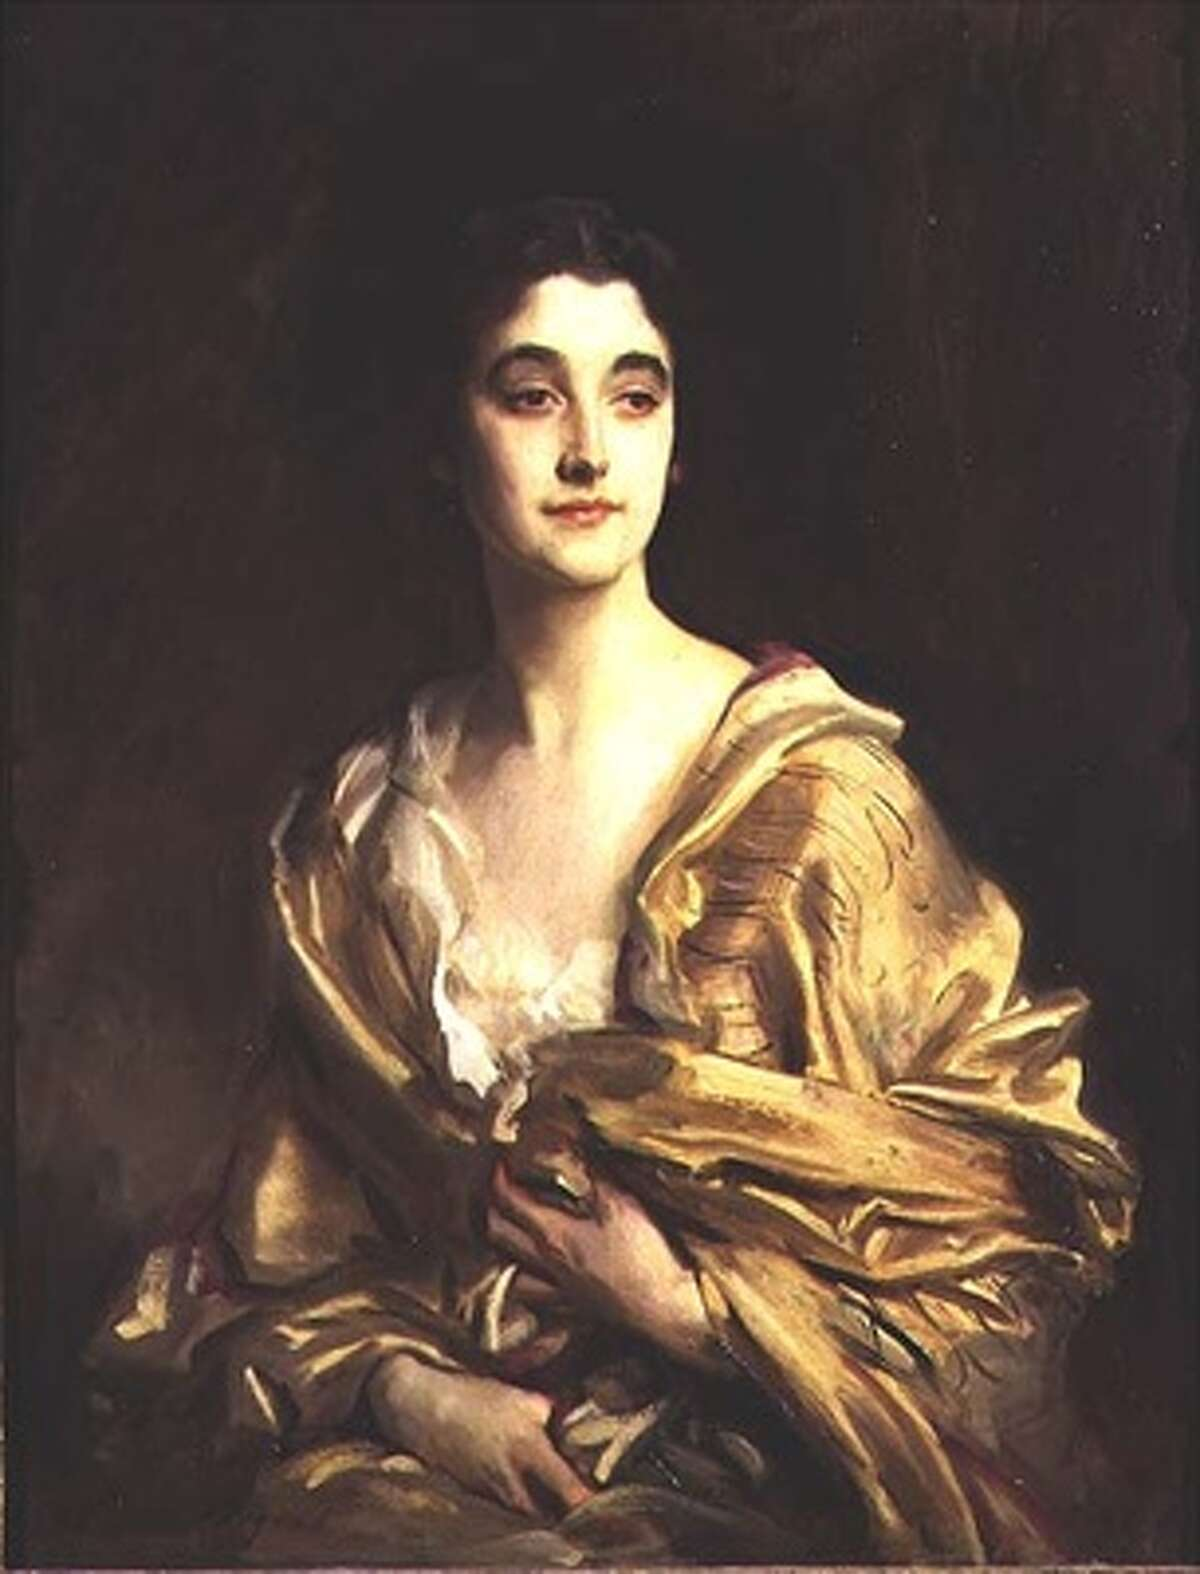 """Among works on view in """"Houghton Hall: Portrait of an English Country House"""" is John Singer Sargent's """"Portrait of Sybil, Countess Rocksavage, later Marchioness of Cholmondeley."""" Lady Sybil reinvigorated her family's historic 18th century home in the 20th century. Sargent was among her friends. Photo: Bridgeman Art Library (1913, oil on canvas, Marquess of Cholmondeley, Houghton Hall.)"""